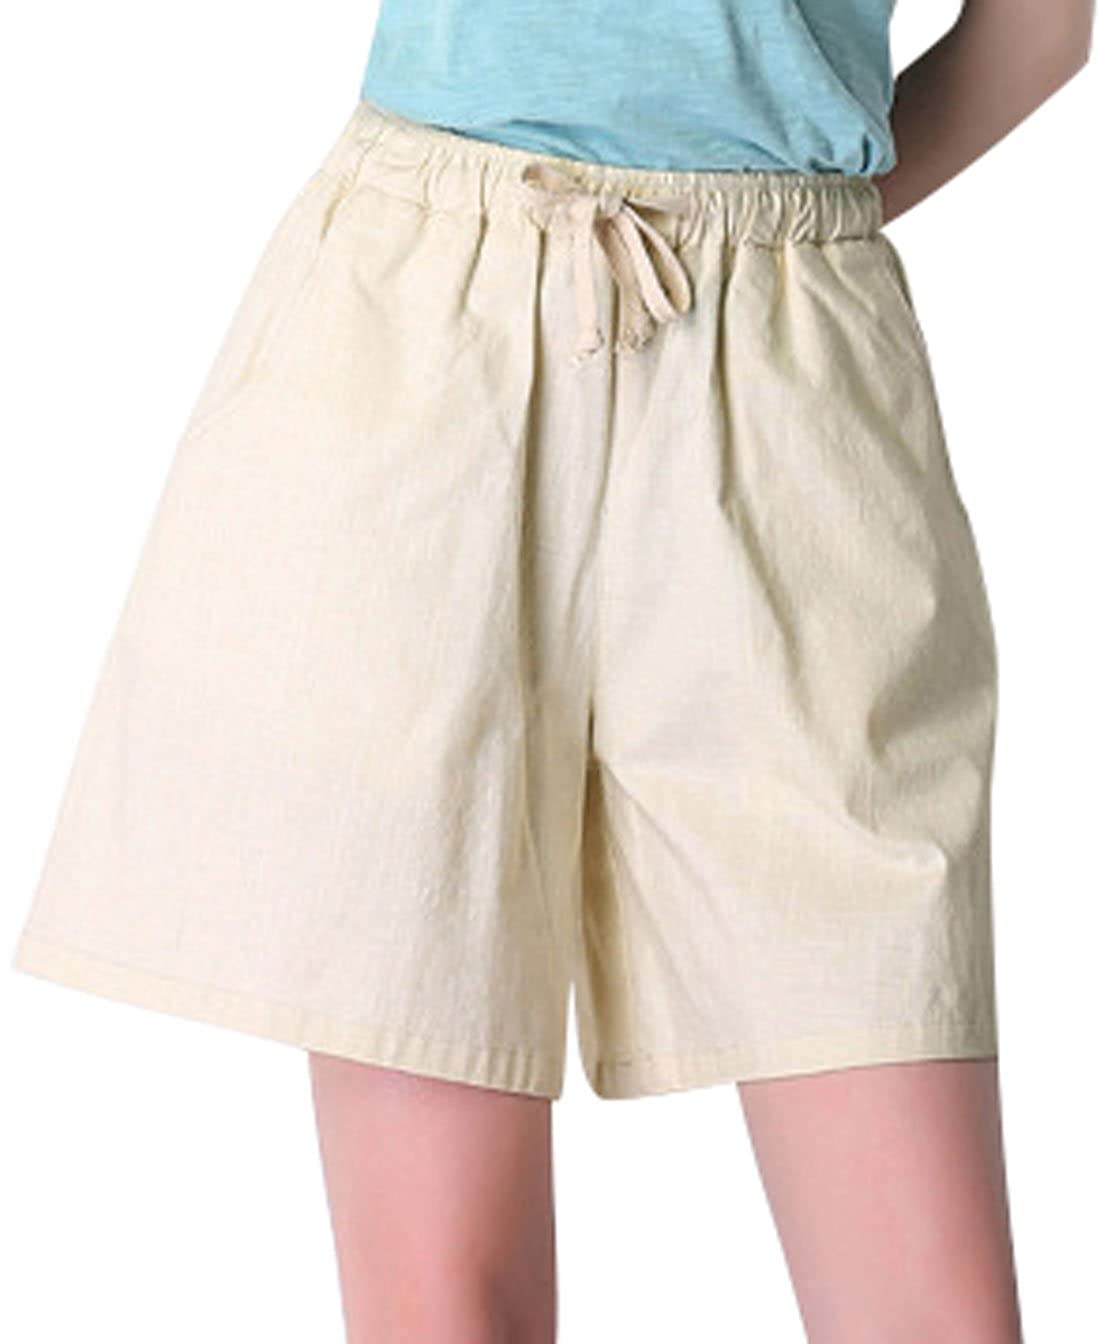 M Khaki Qiuse Women's Casual Wide Legs Elastic Waist with Drawstring Bermuda Shorts